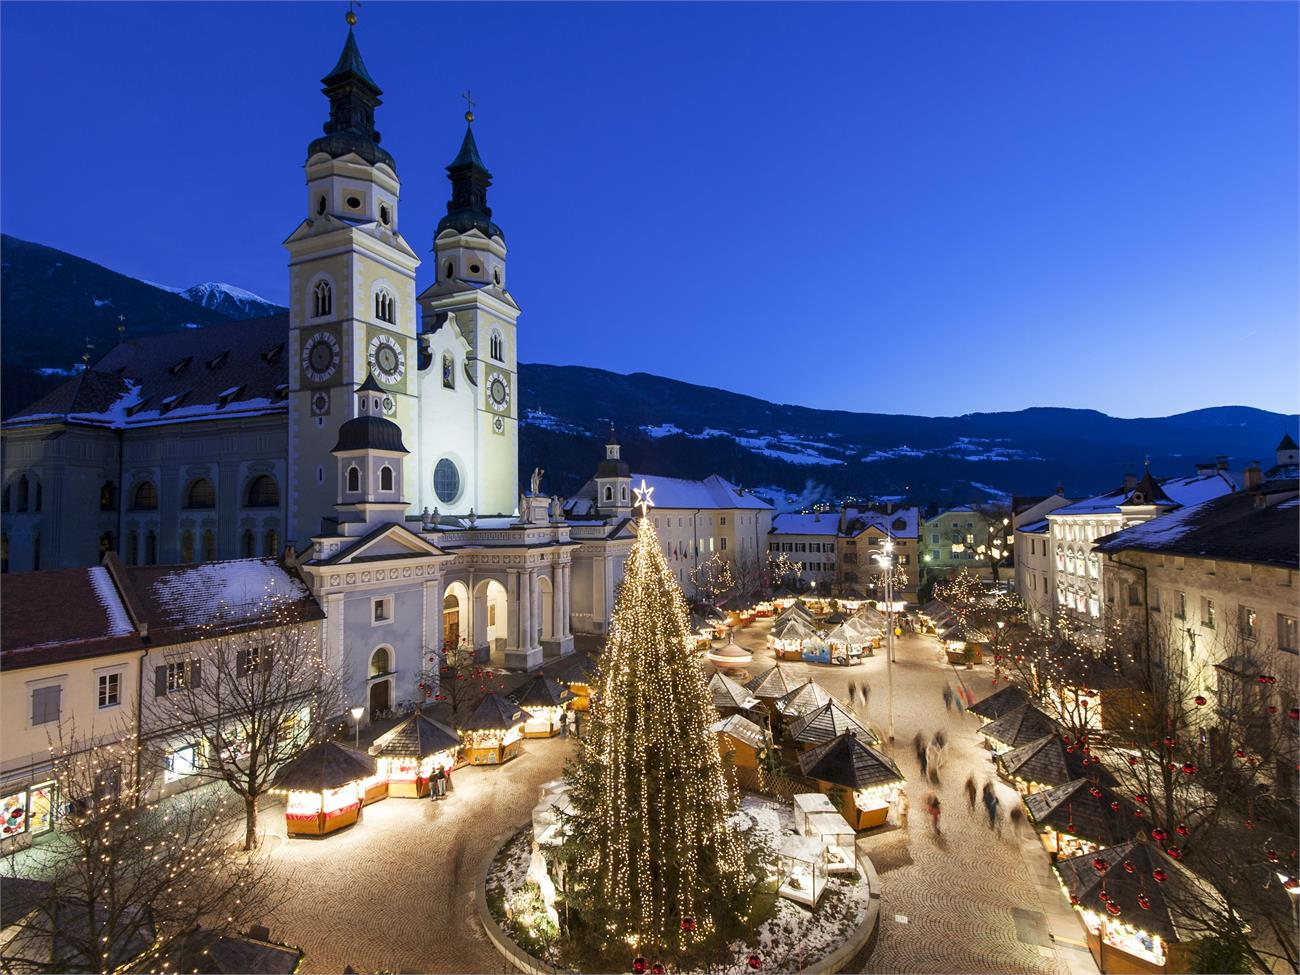 Christmas Market in Bressanone (Brixen) is one of the most suggestive in Europe